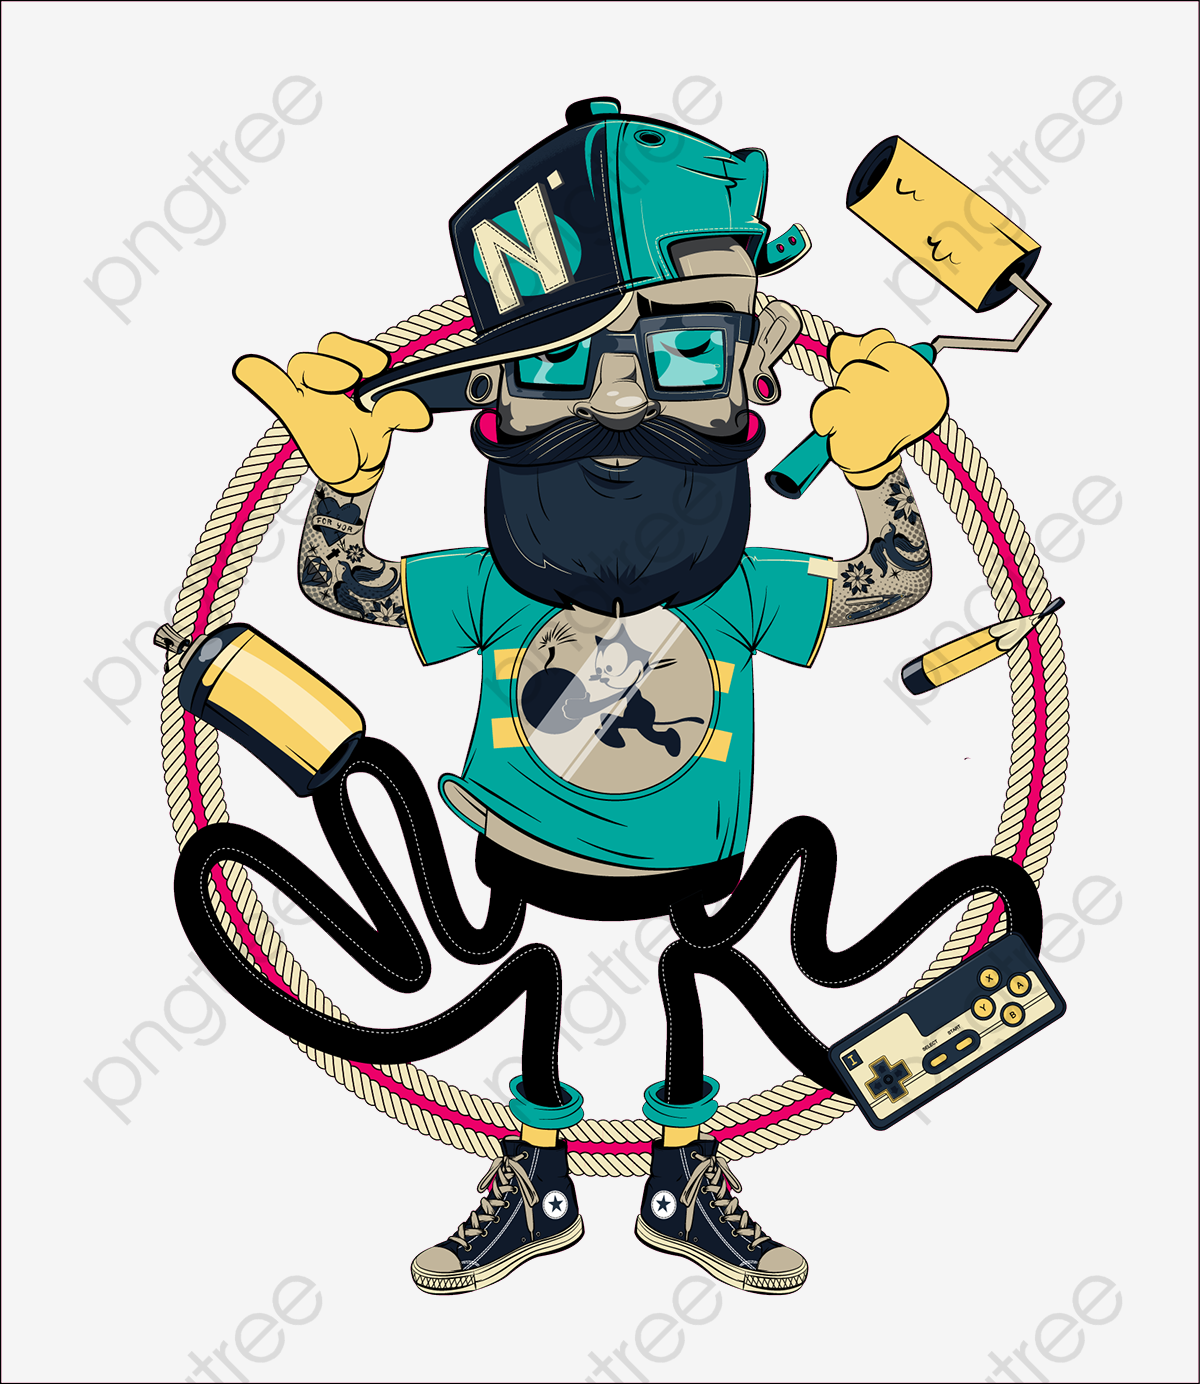 Download for free png. Graffiti clipart man